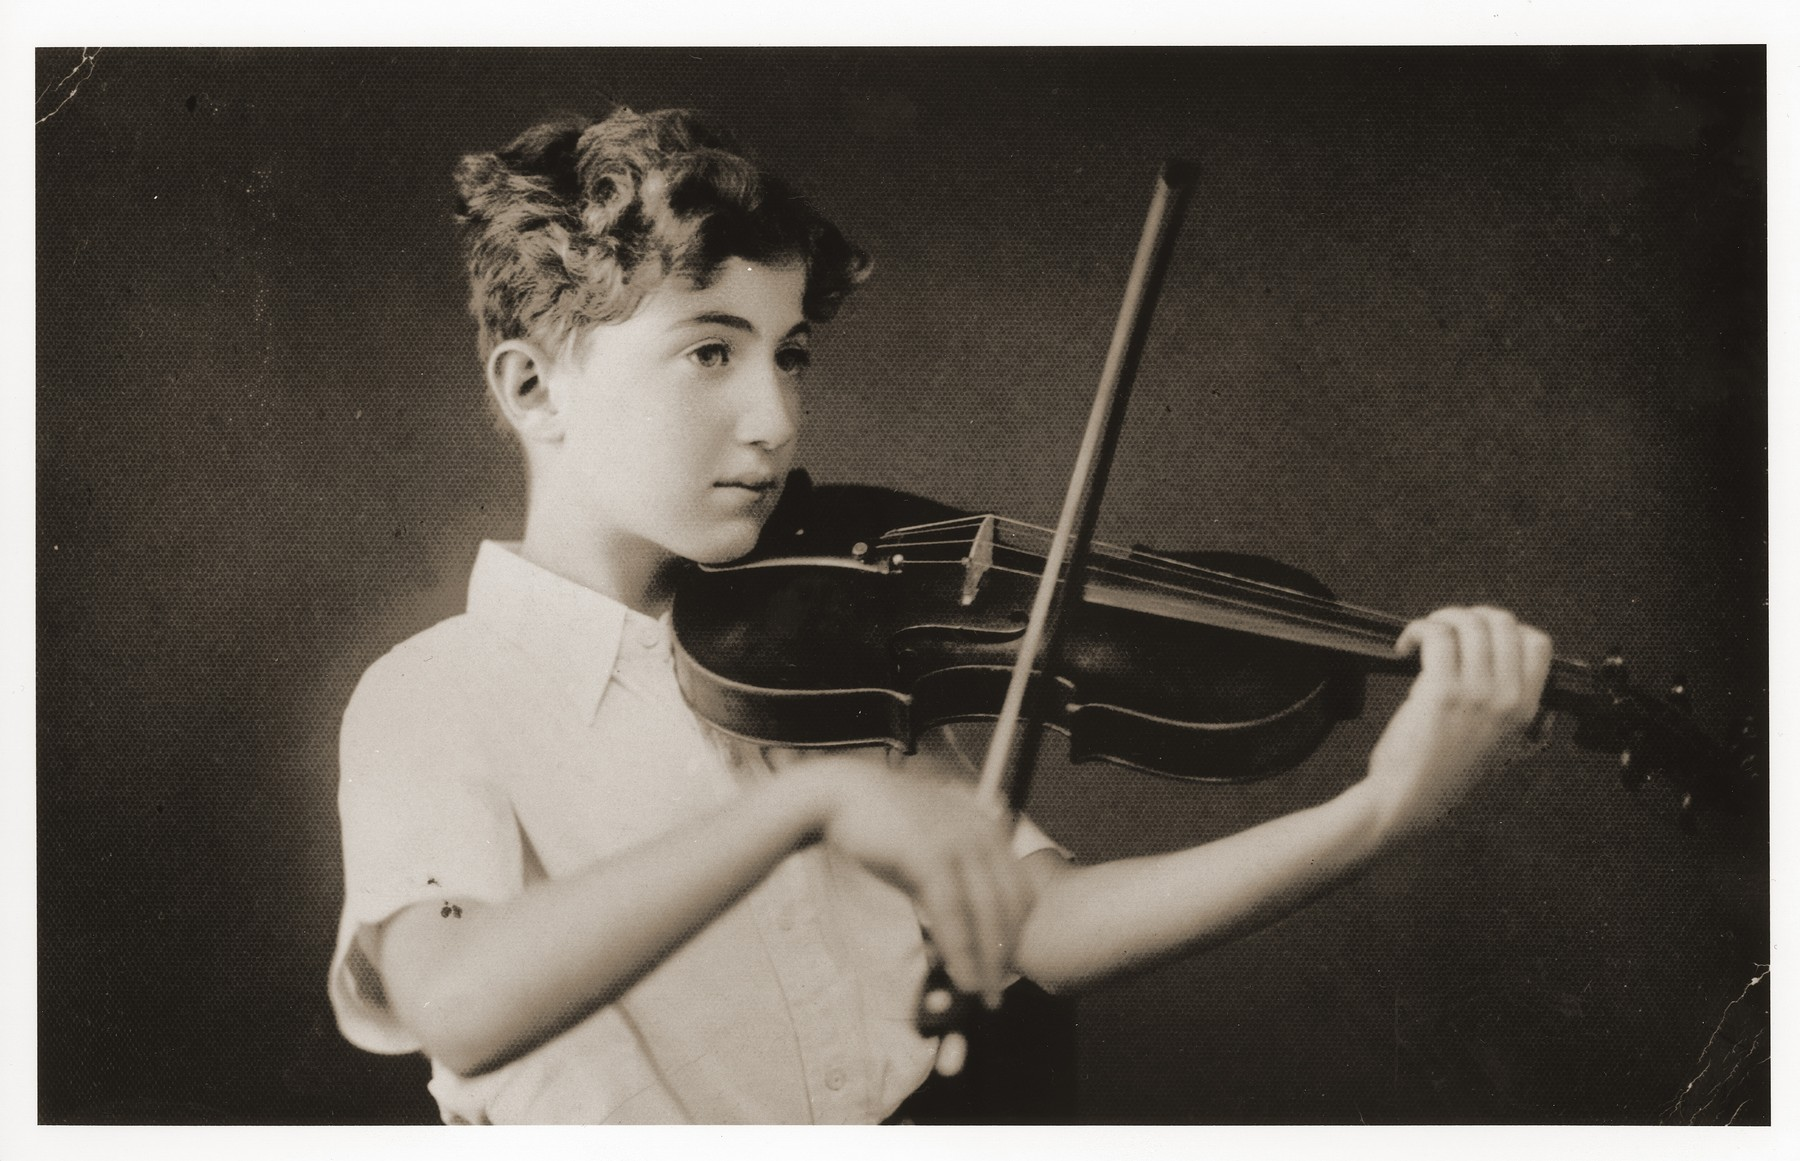 The eleven-year-old German Jewish refugee, Helmut Stern, practices the violin in his home in Harbin, China.